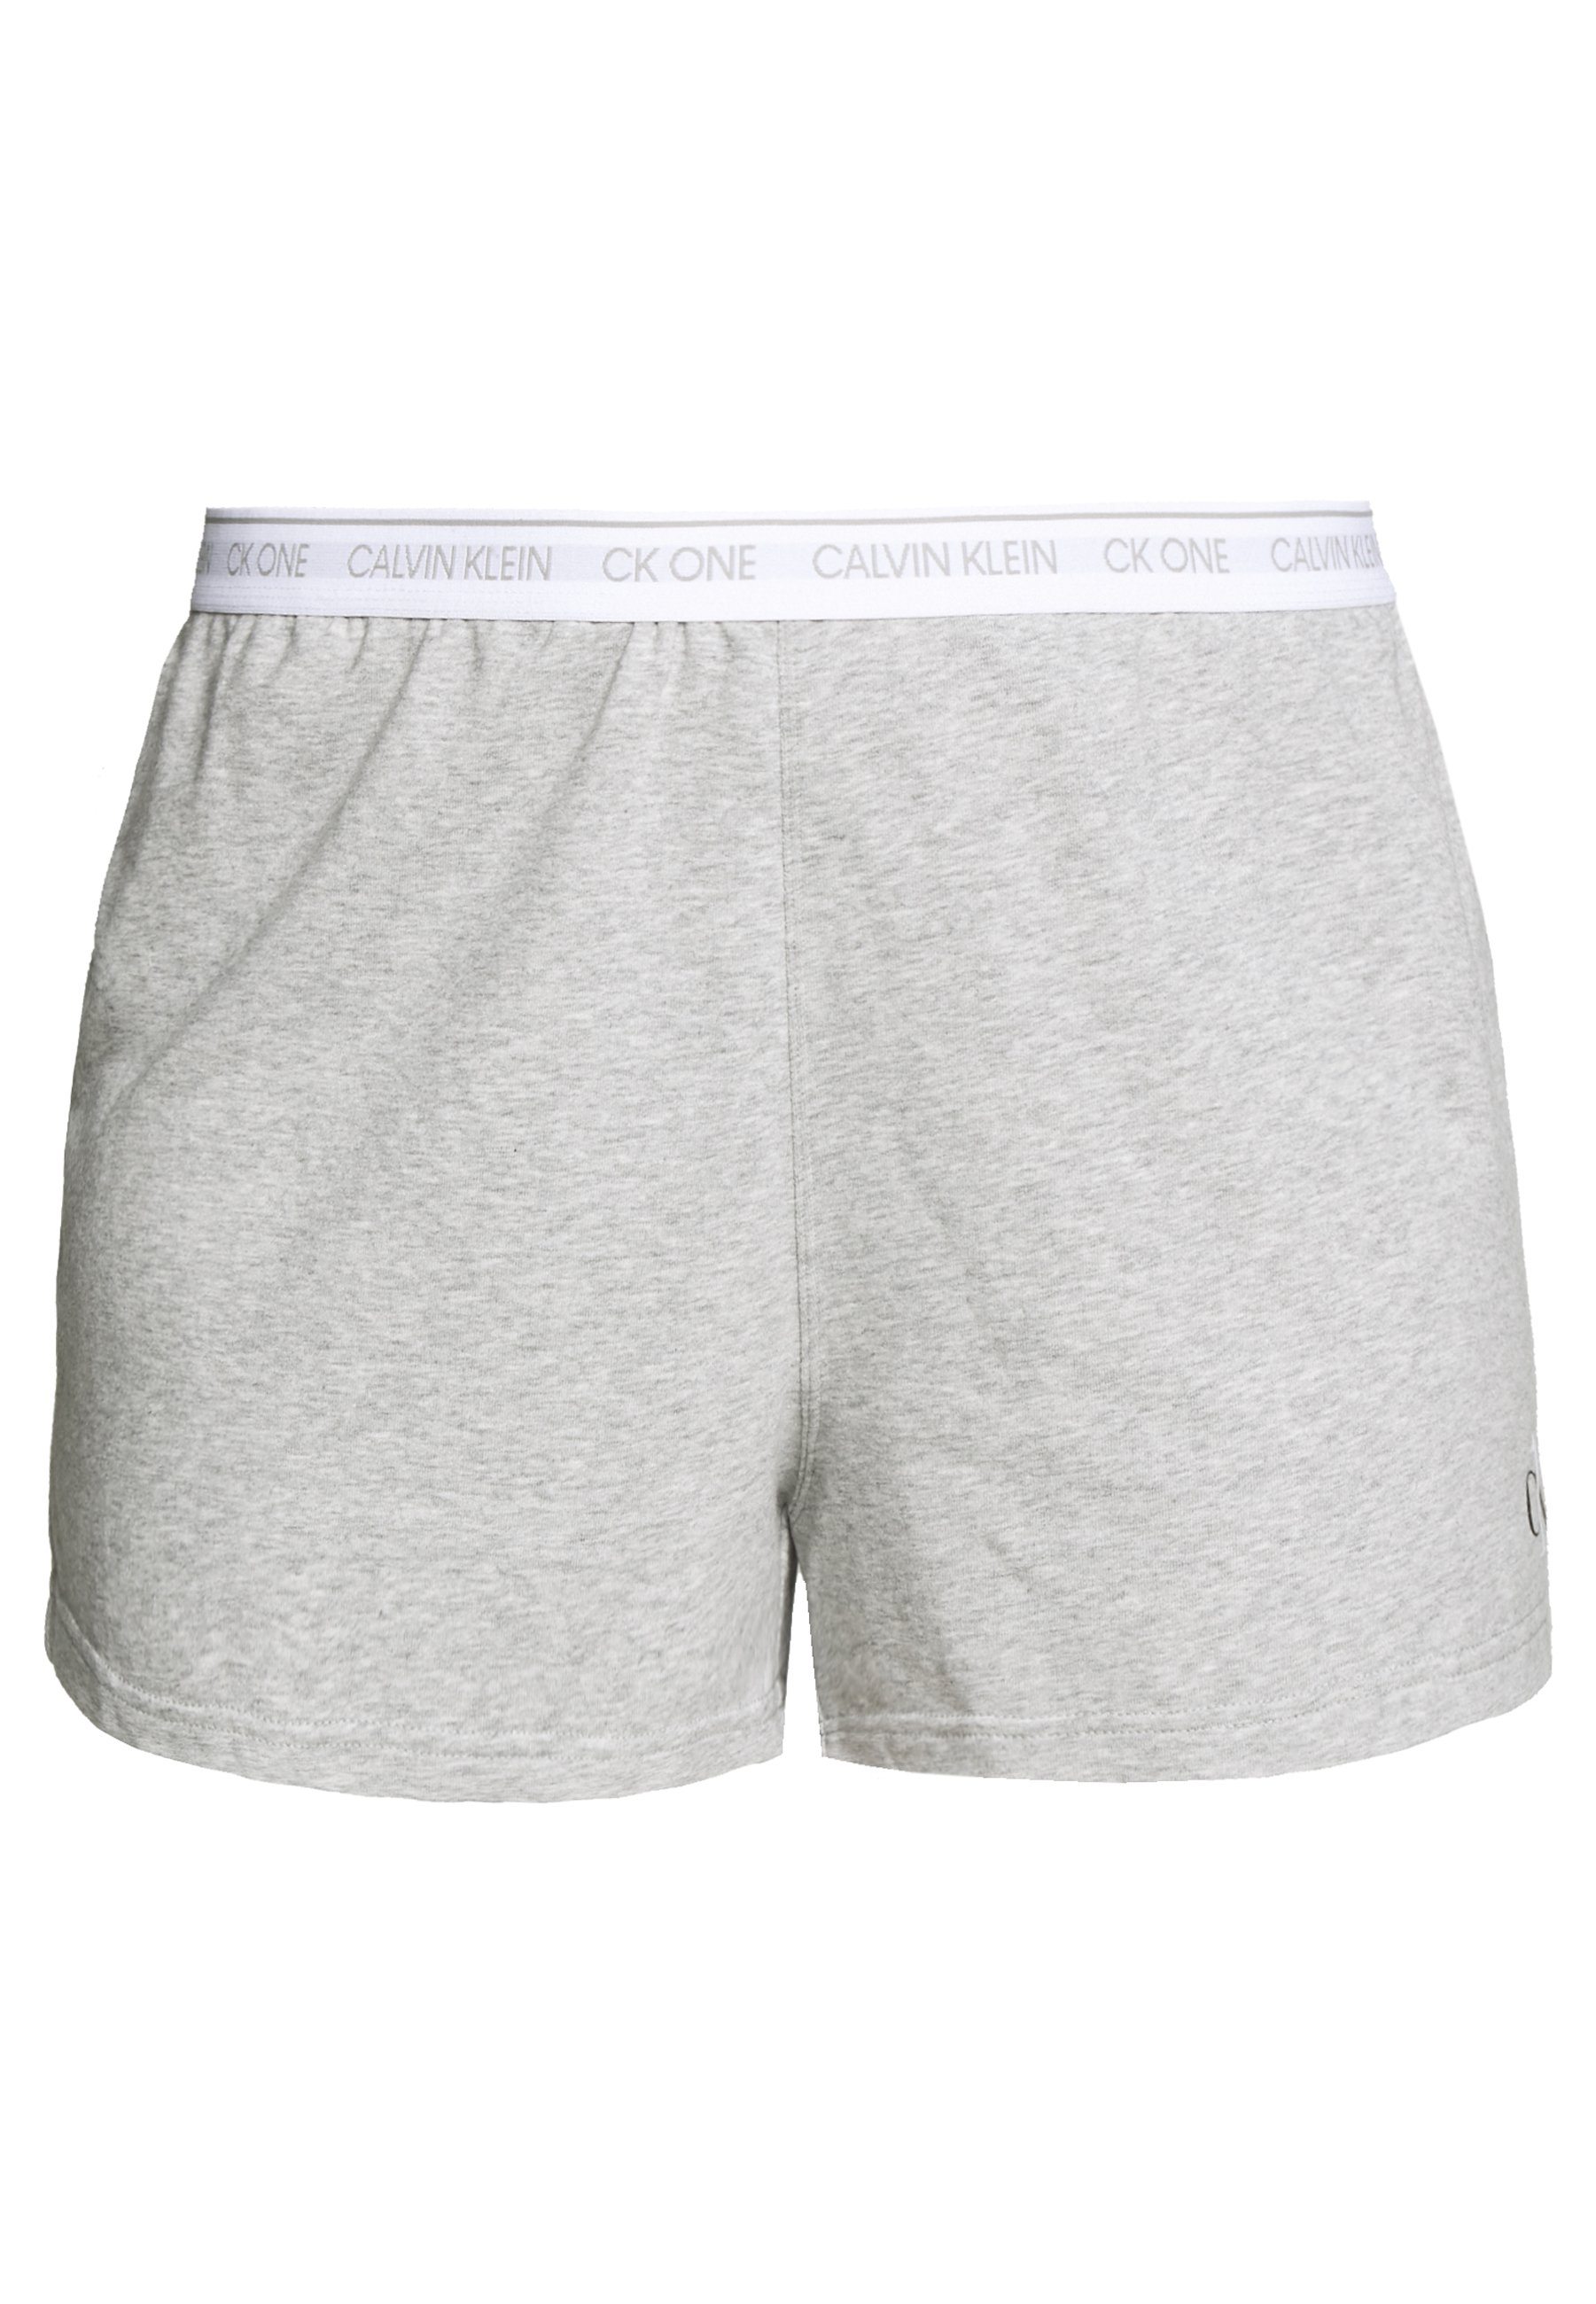 Calvin Klein Underwear ONE LOUNGE SLEEP SHORT - Pantaloni del pigiama - grey heather C1mboAYp